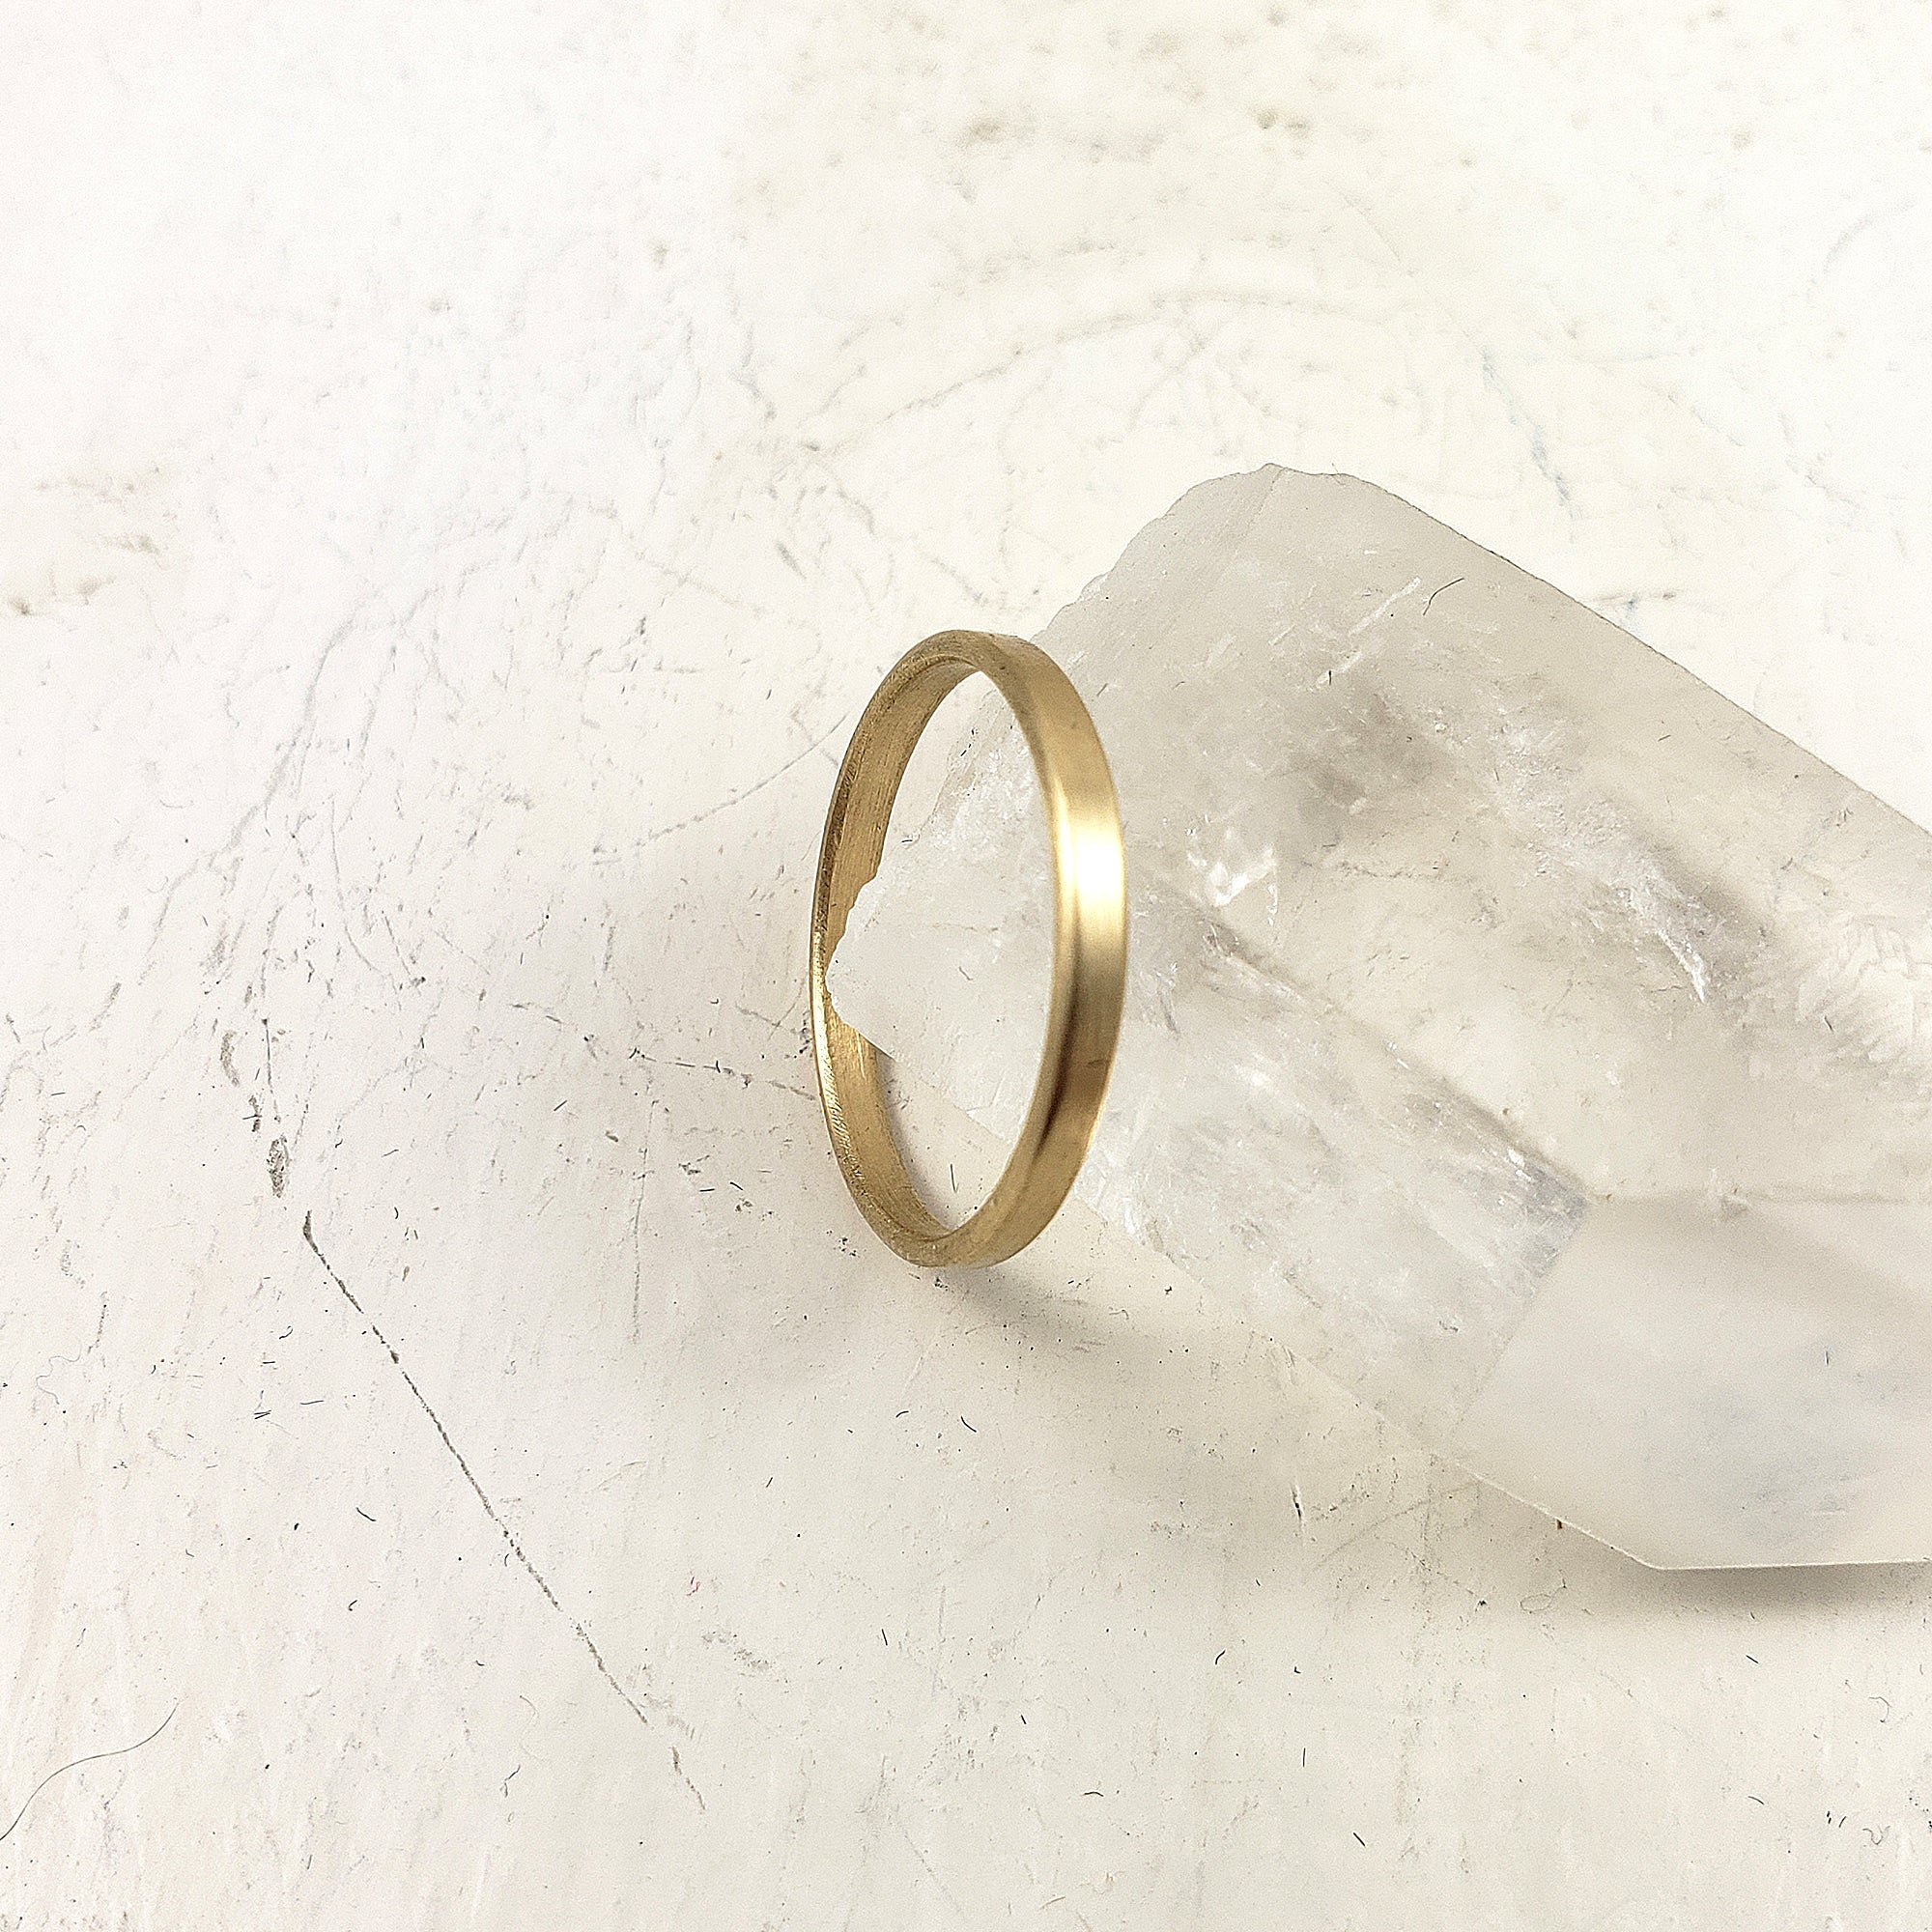 Classic solid gold engagement ring, simple, minimalist, modern